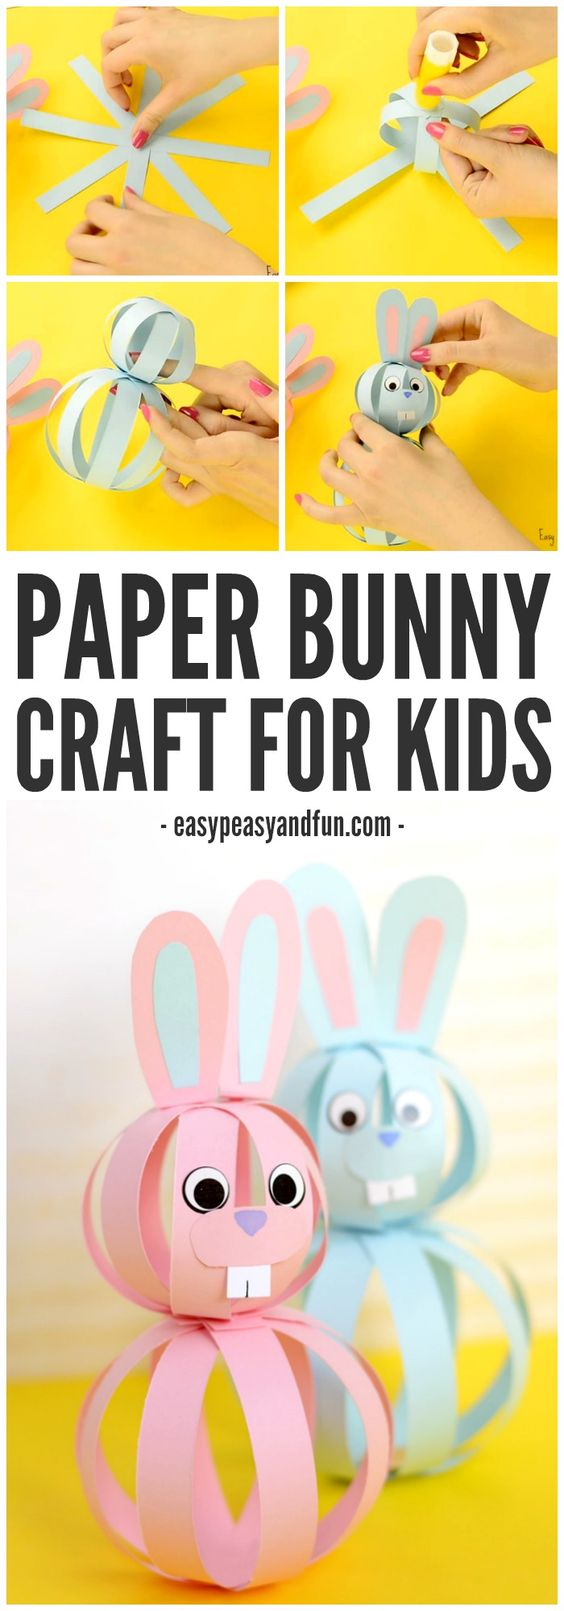 Cute and Simple Paper Bunny Craft for Kids to Make: